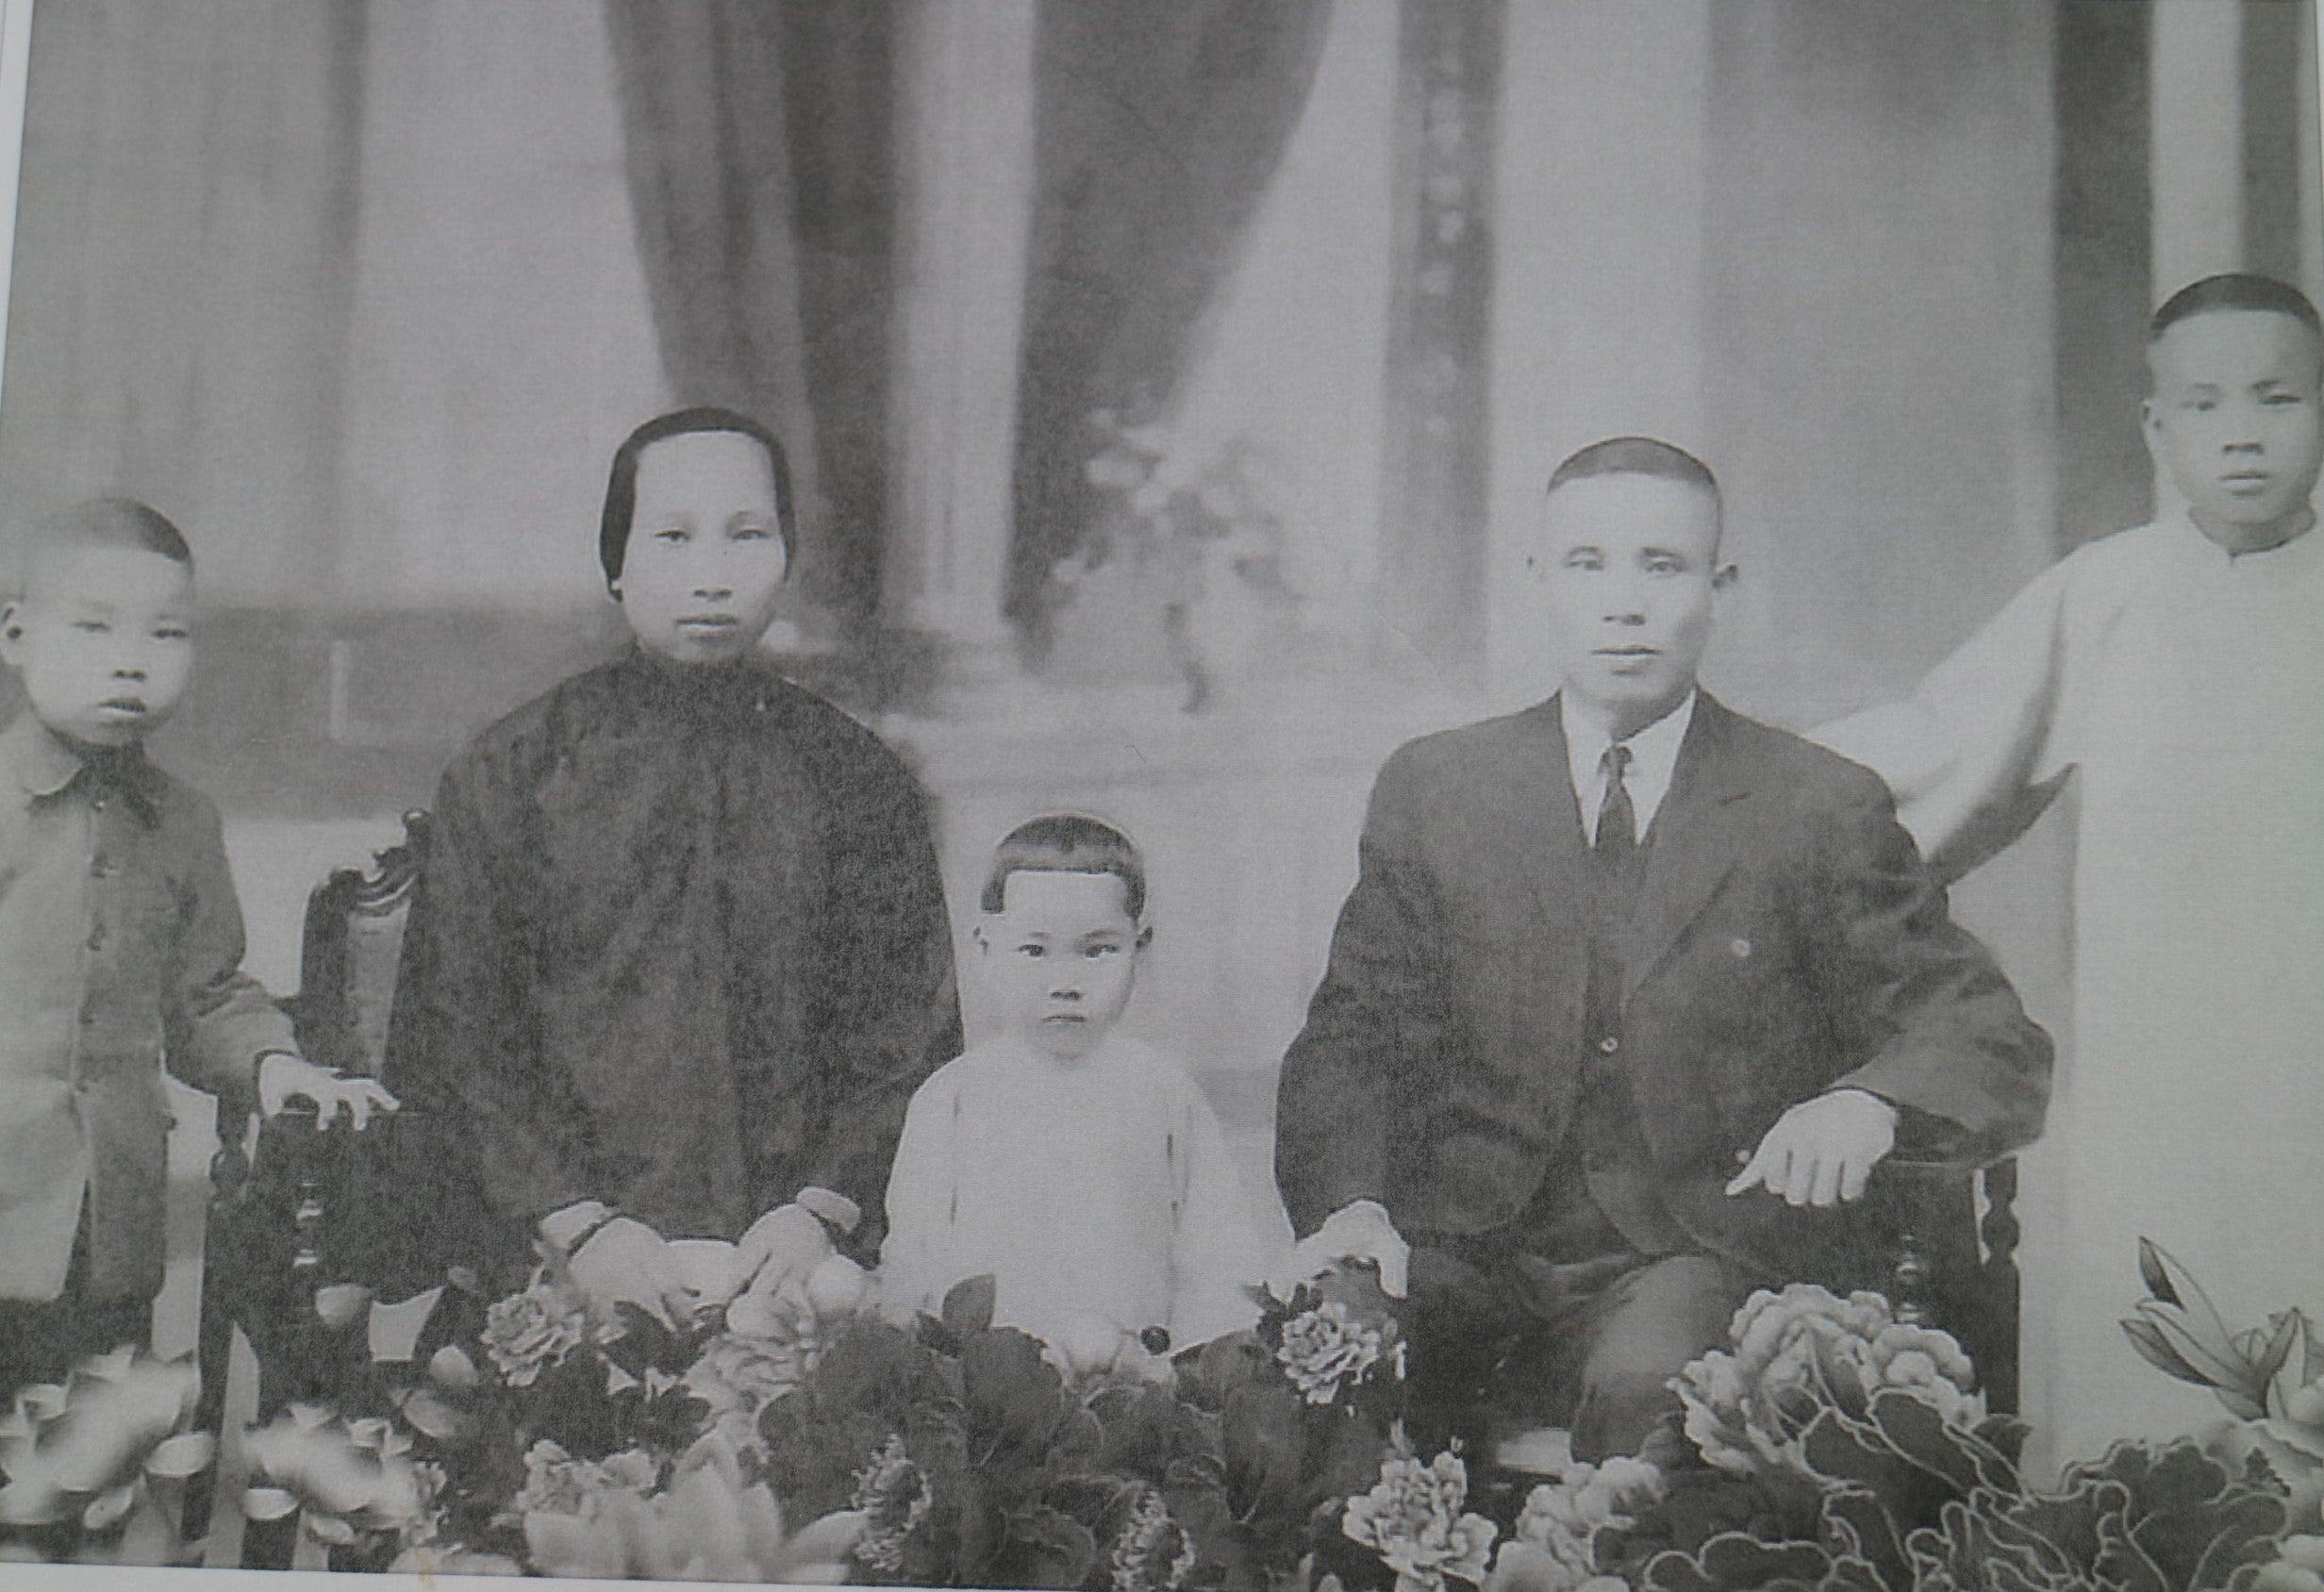 Douglas Lam's grandparents and three of their seven children (Douglas' father is in the far right)